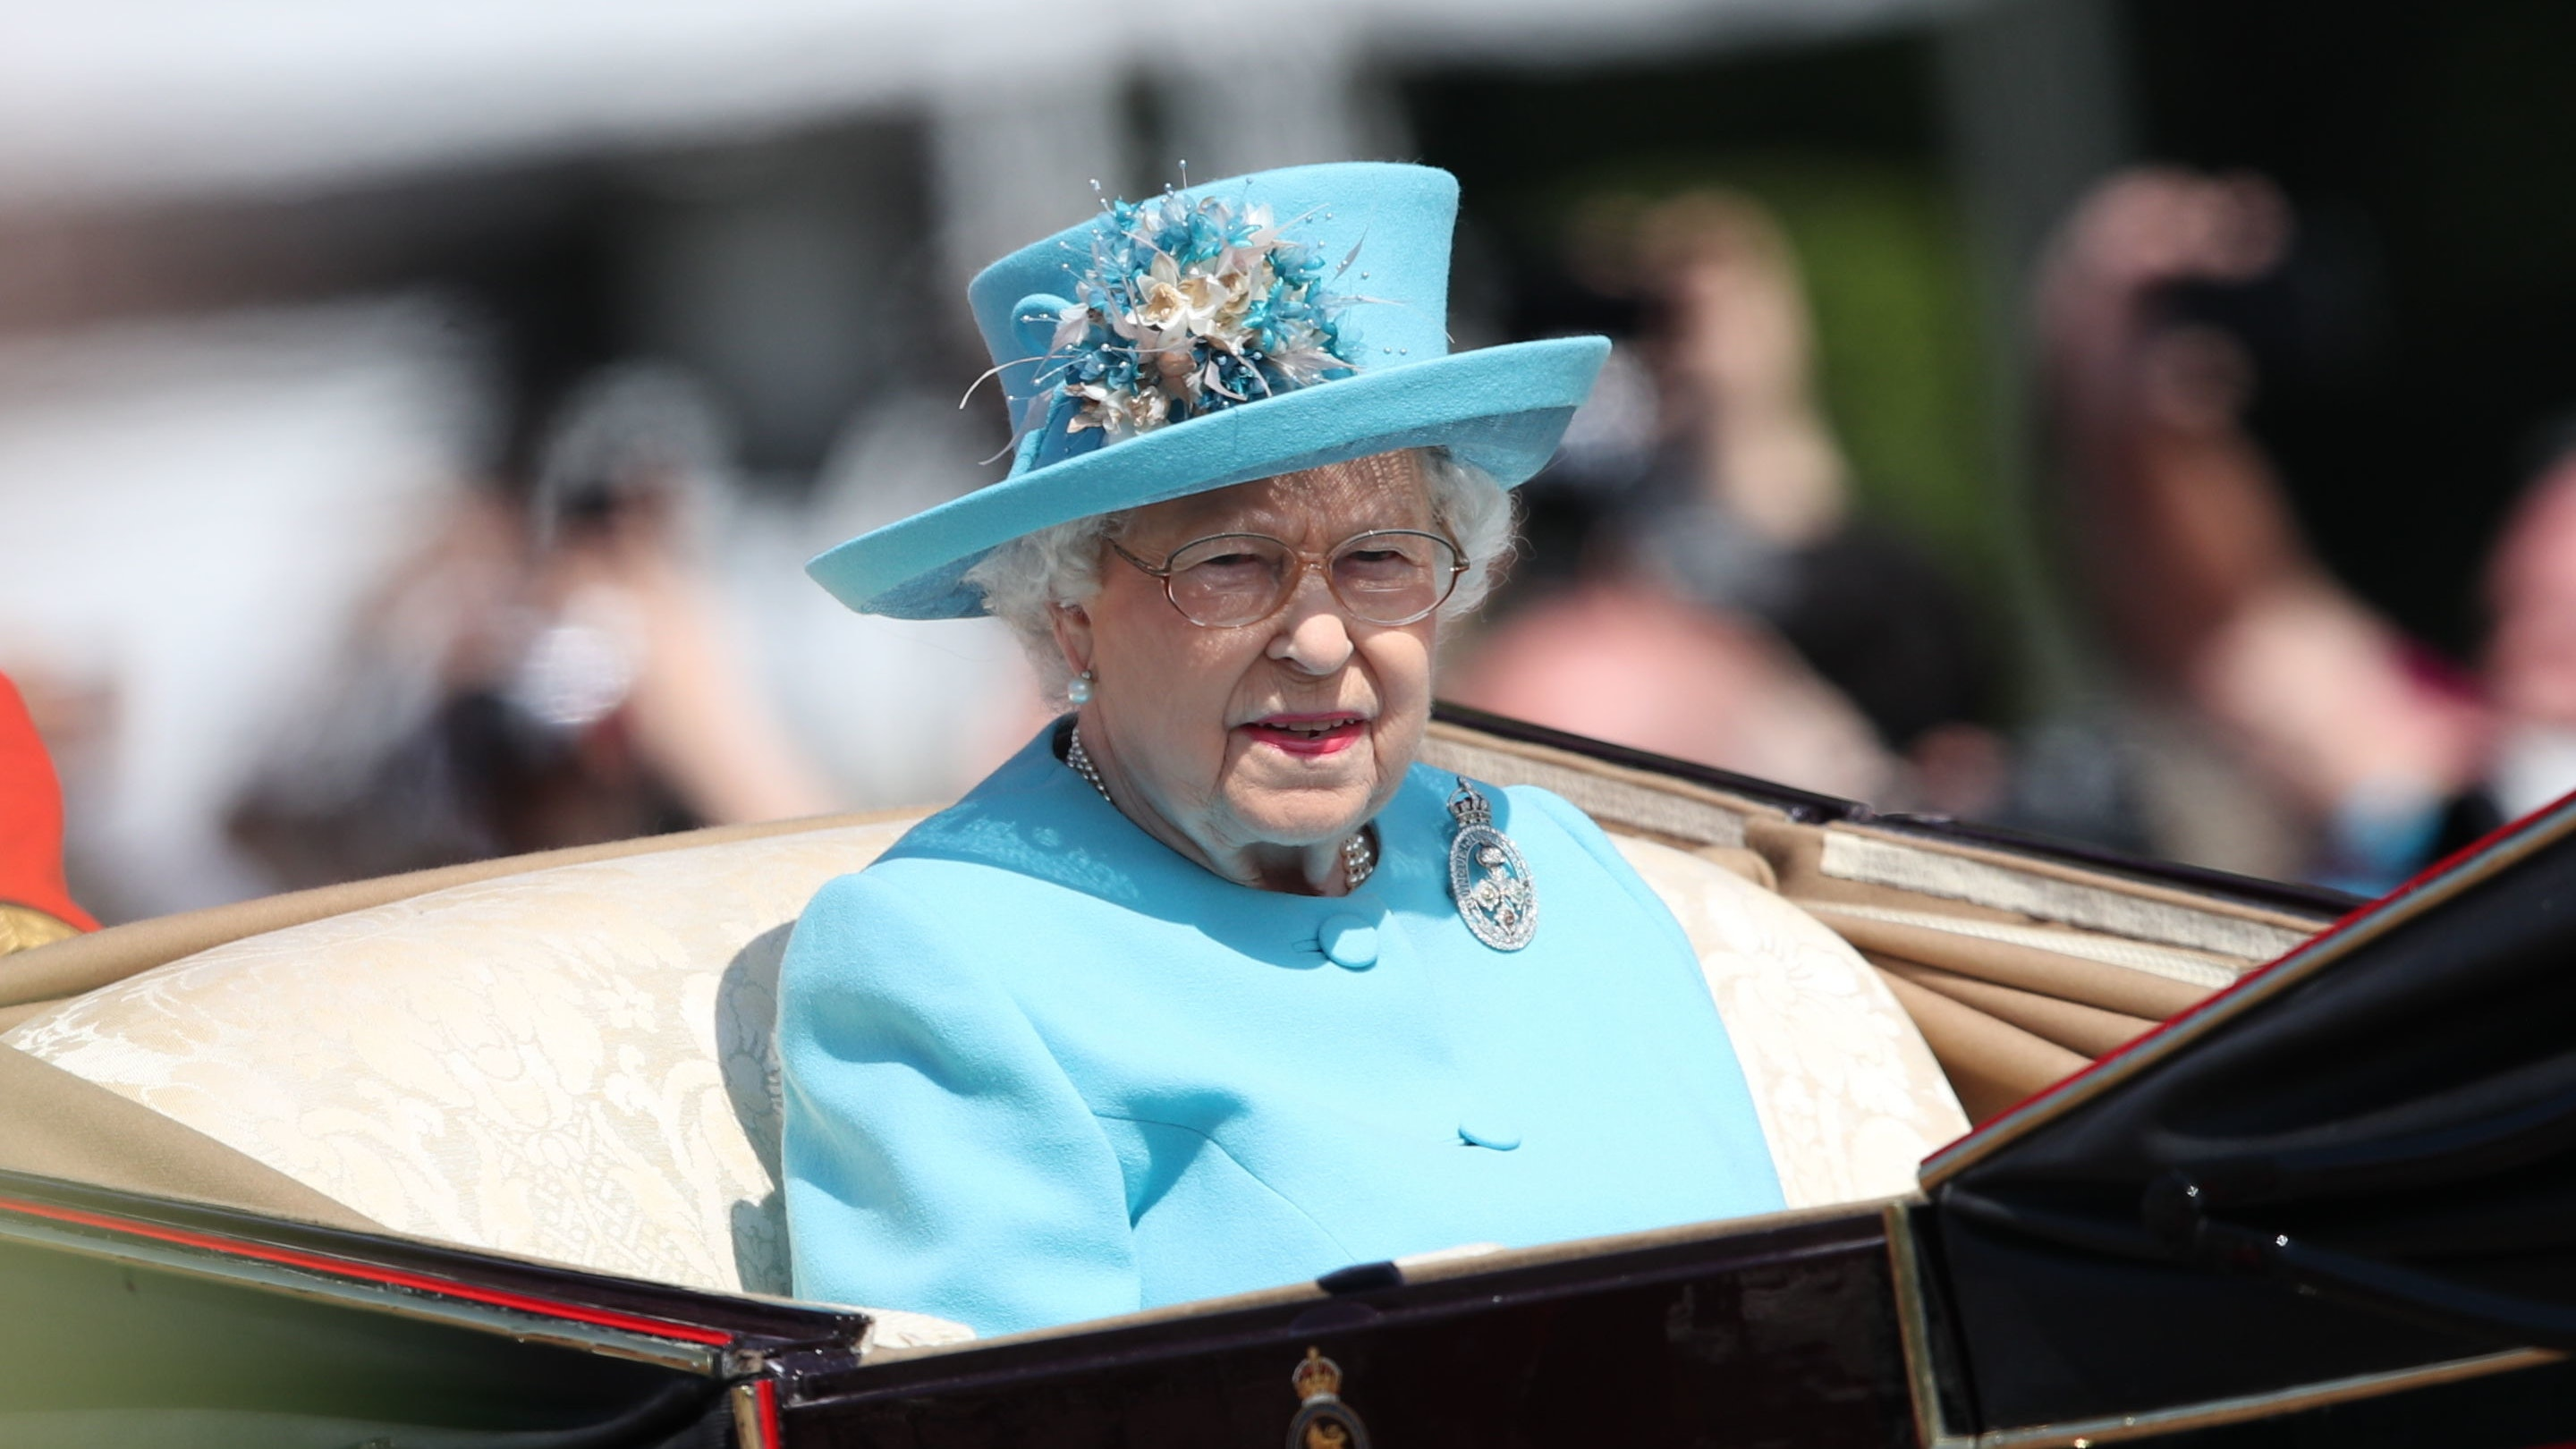 Royals join Queen at birthday parade